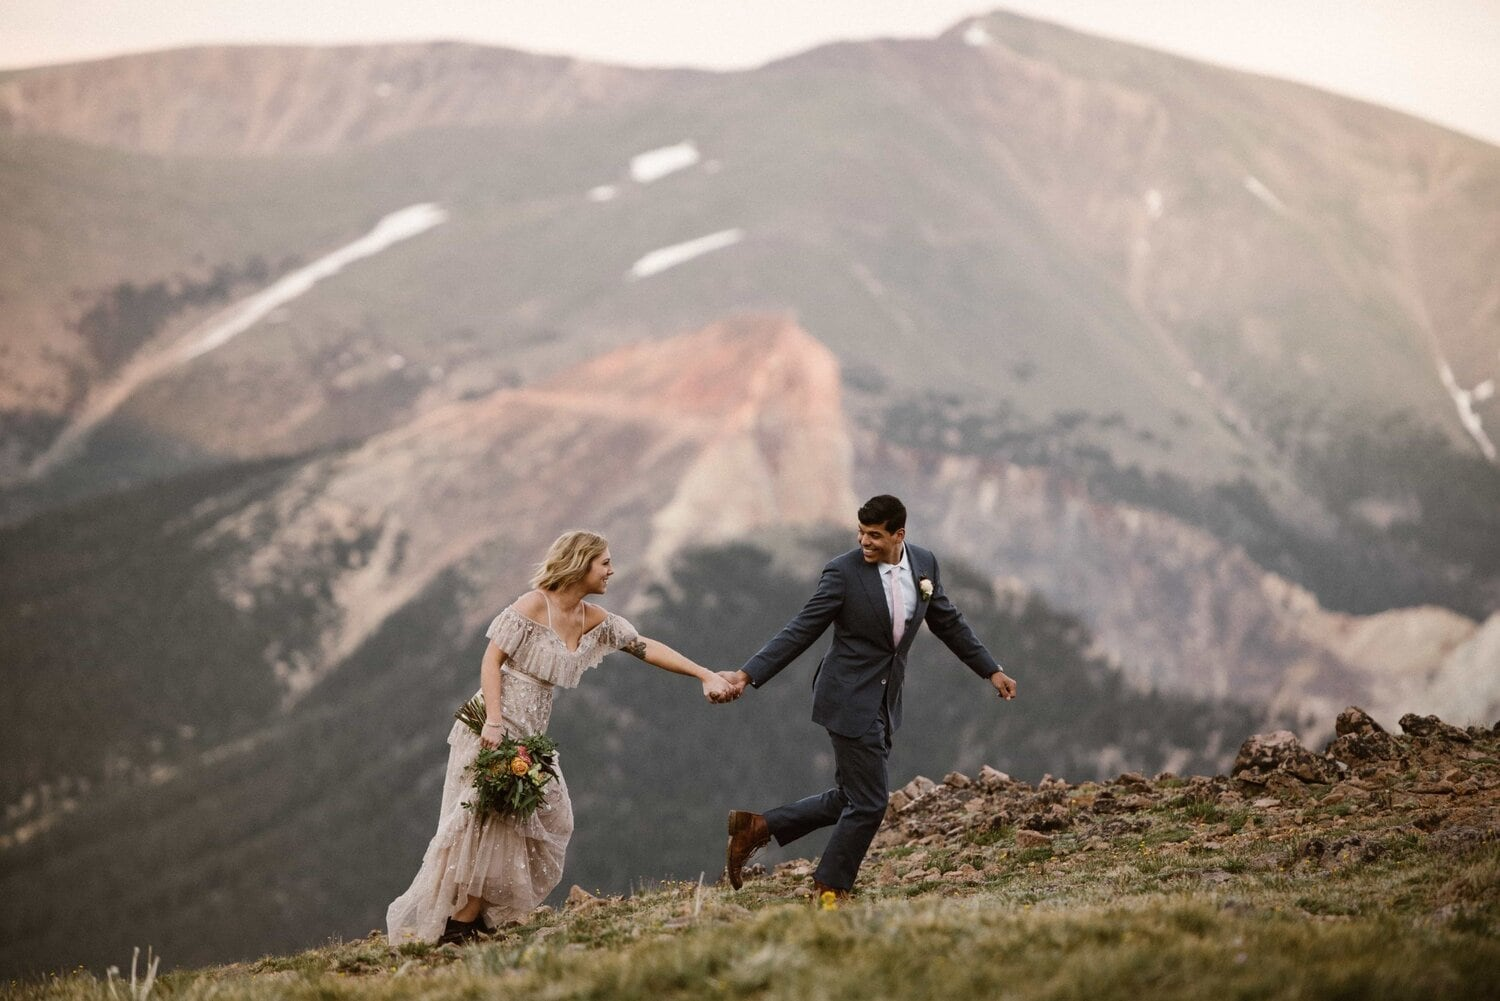 Bride and groom are hand in hand while walking on a mountain.